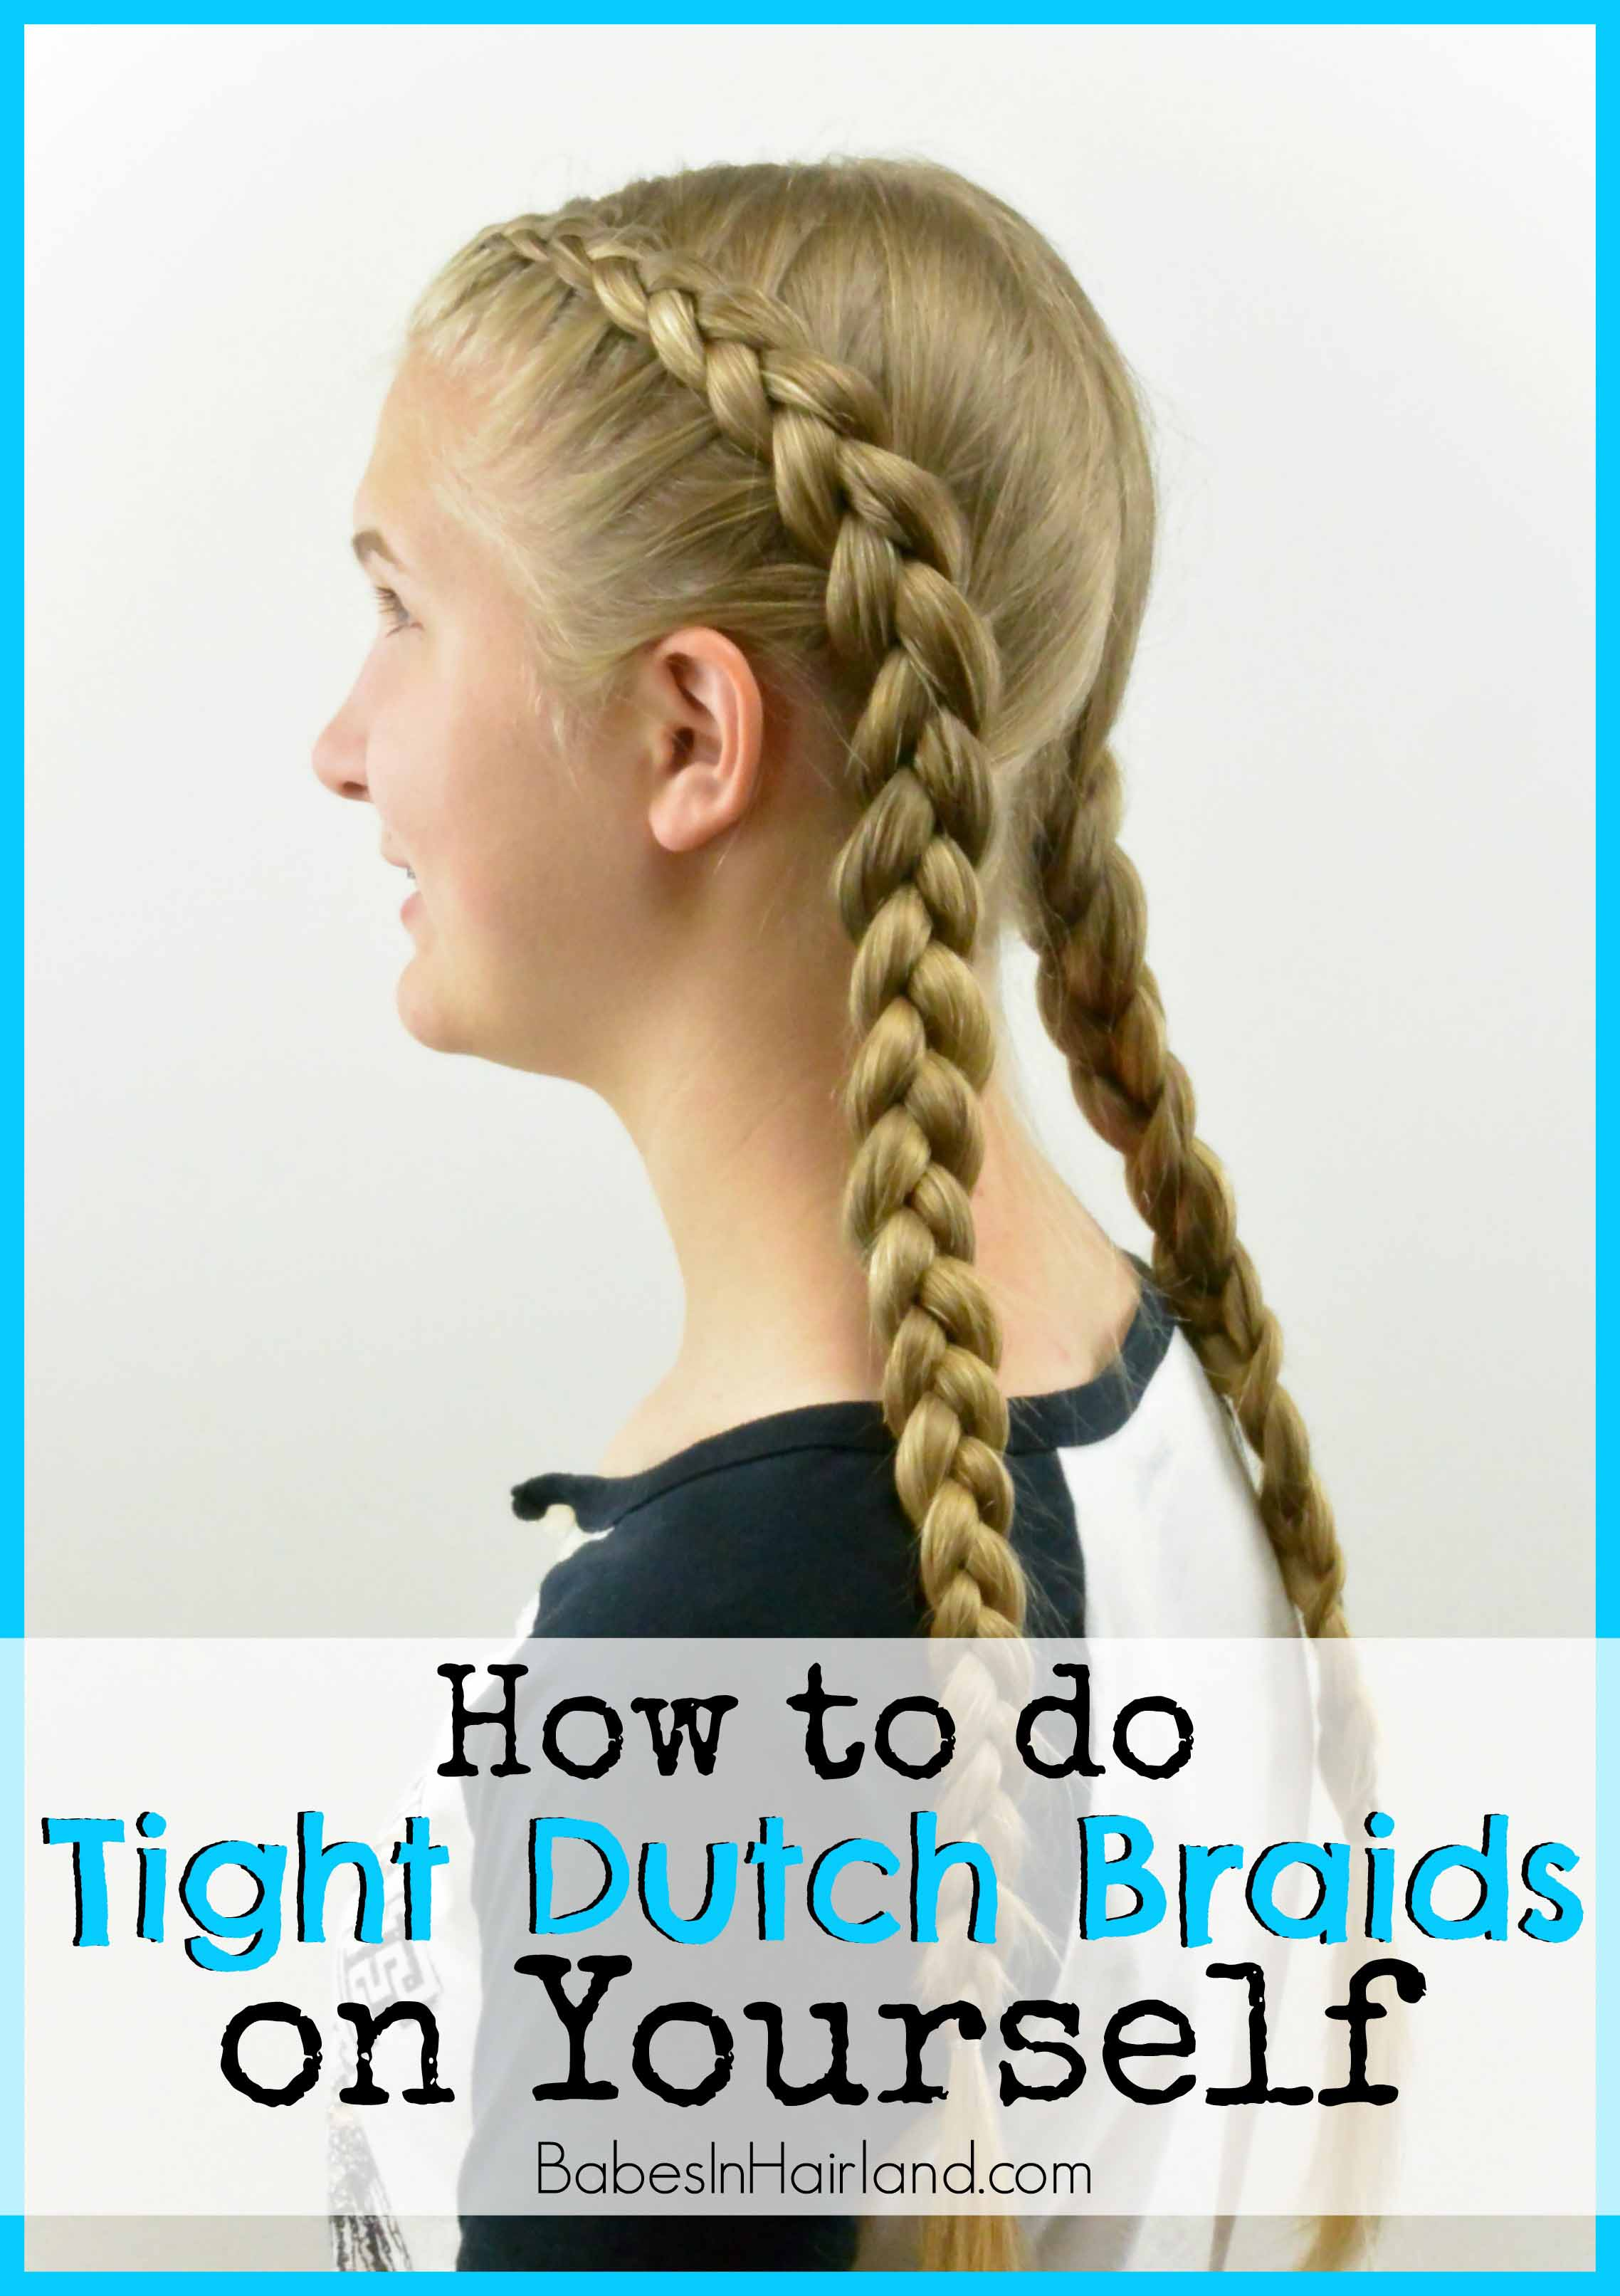 How to tight dutch braids on yourself babes in hairland how to tight dutch braids on yourself from babesinhairland dutchbraid frenchbraid solutioingenieria